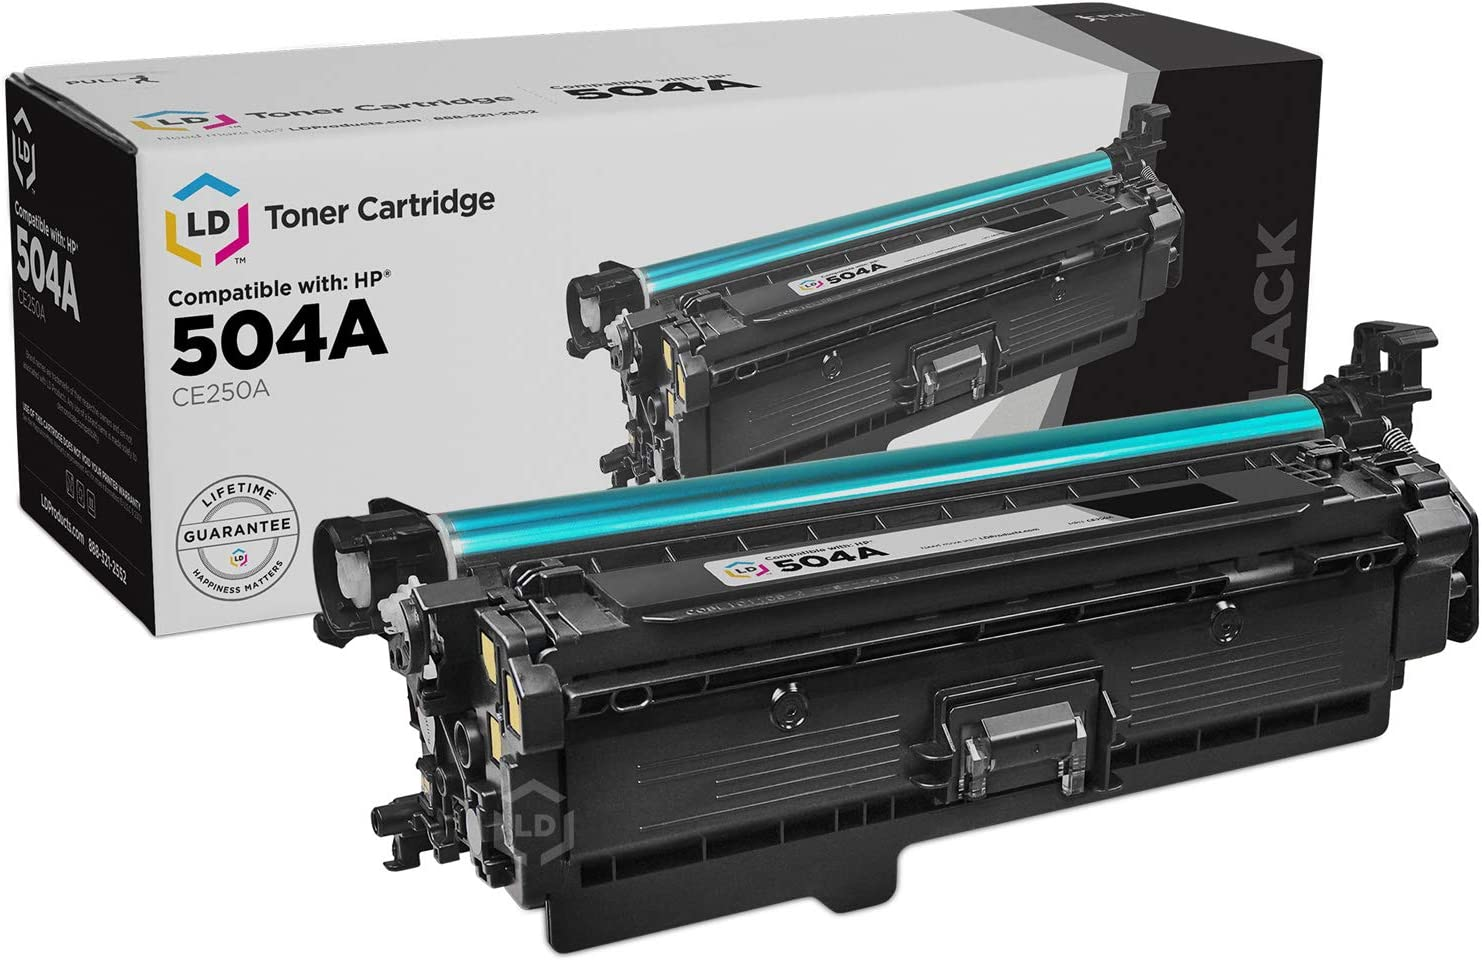 LD Remanufactured Toner Cartridge Replacement for HP 504A CE250A (Black)